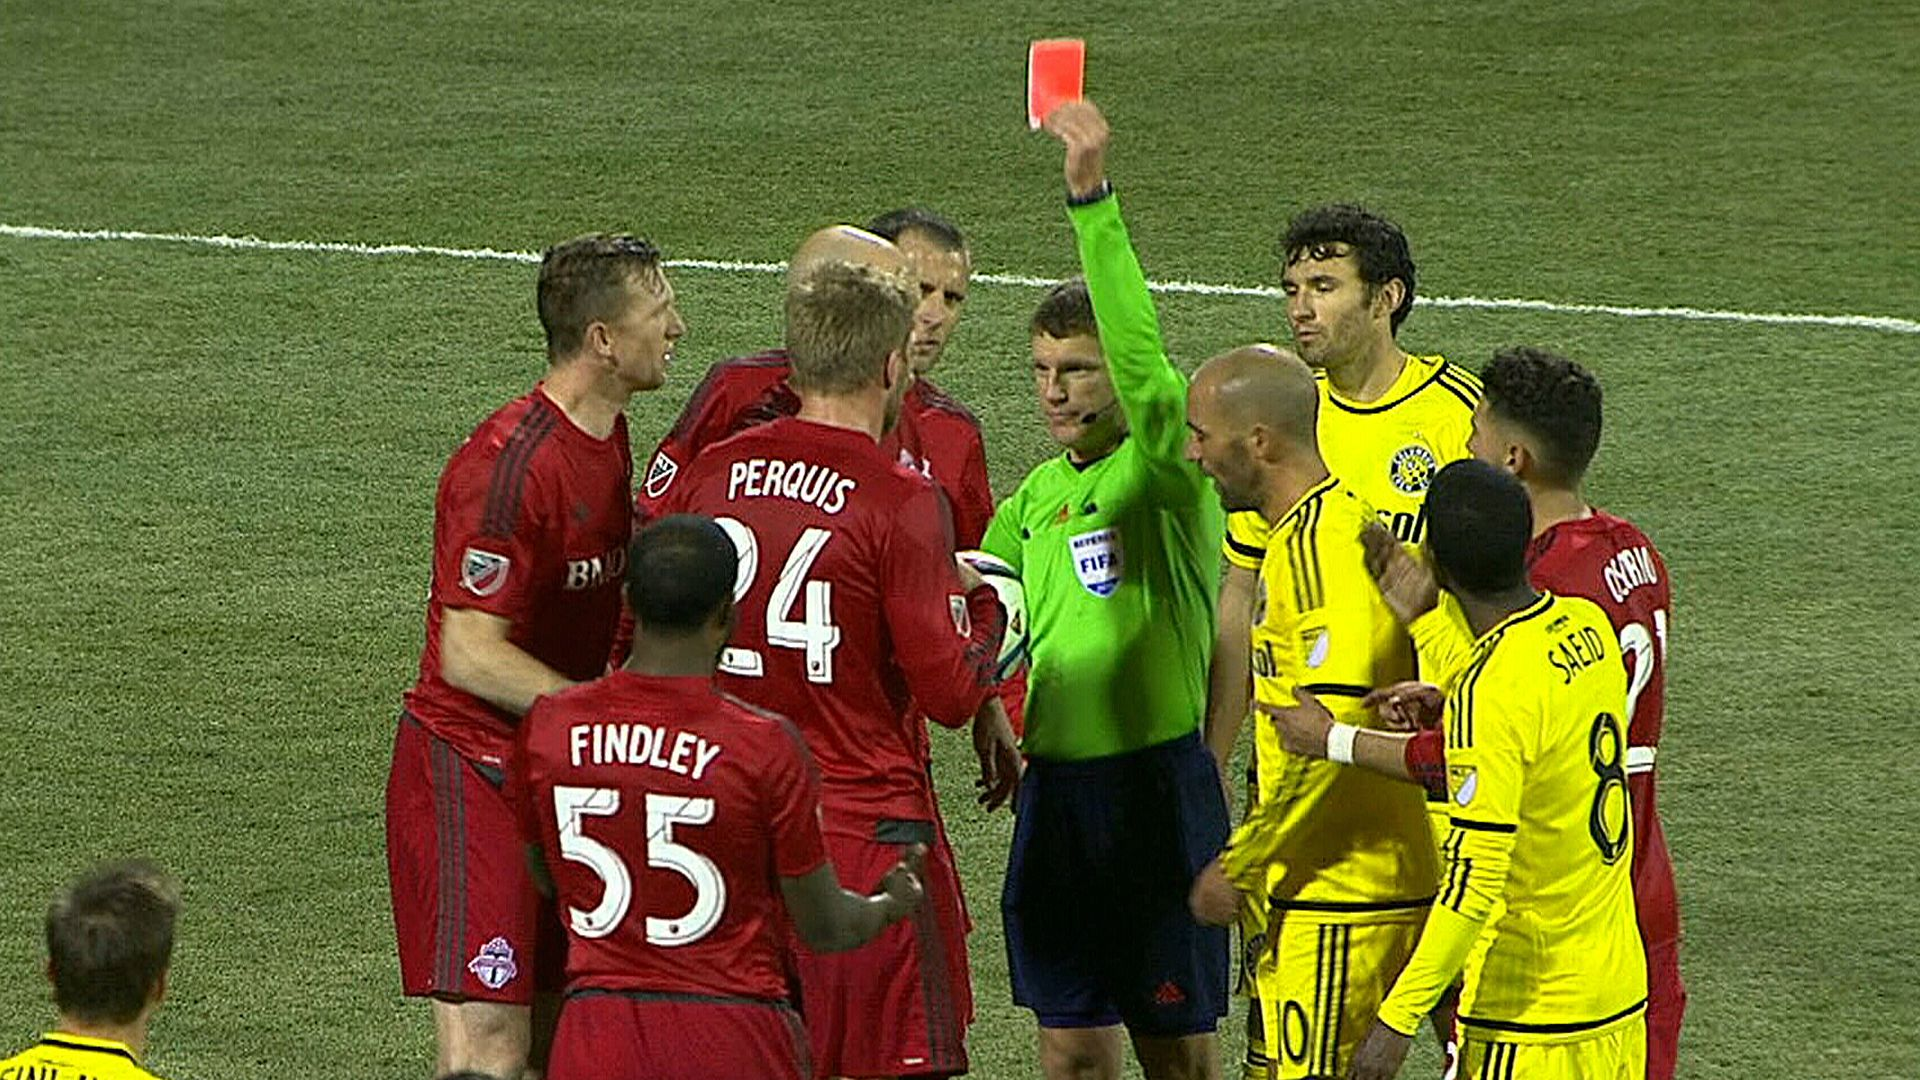 Remember that time that Dave Gantar showed a red card to Damien Perquis despite Justin Morrow actually being the player that he was trying to send off?